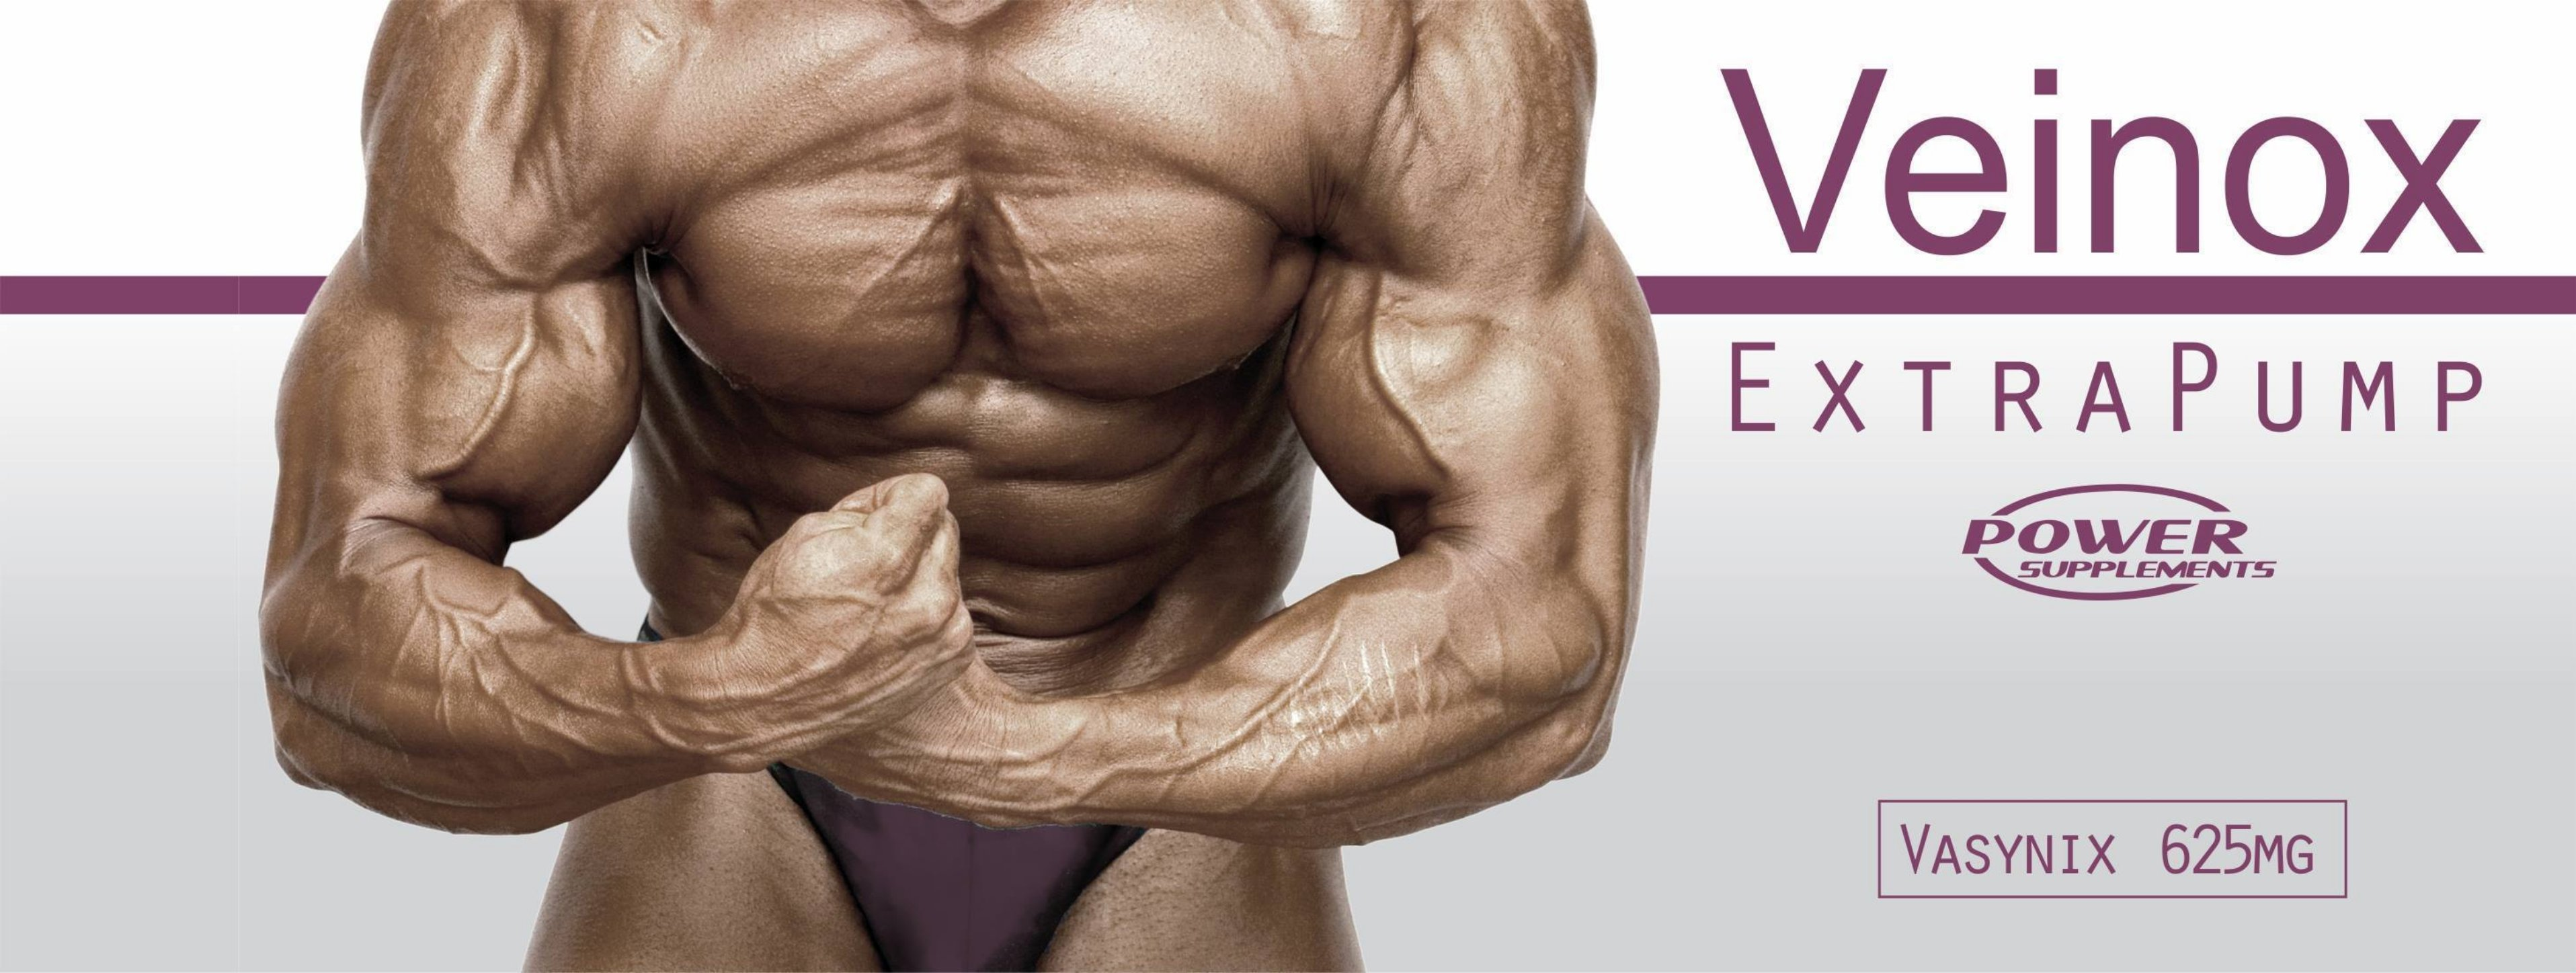 Veinox Power Supplements - Suplemento Vasodilatador